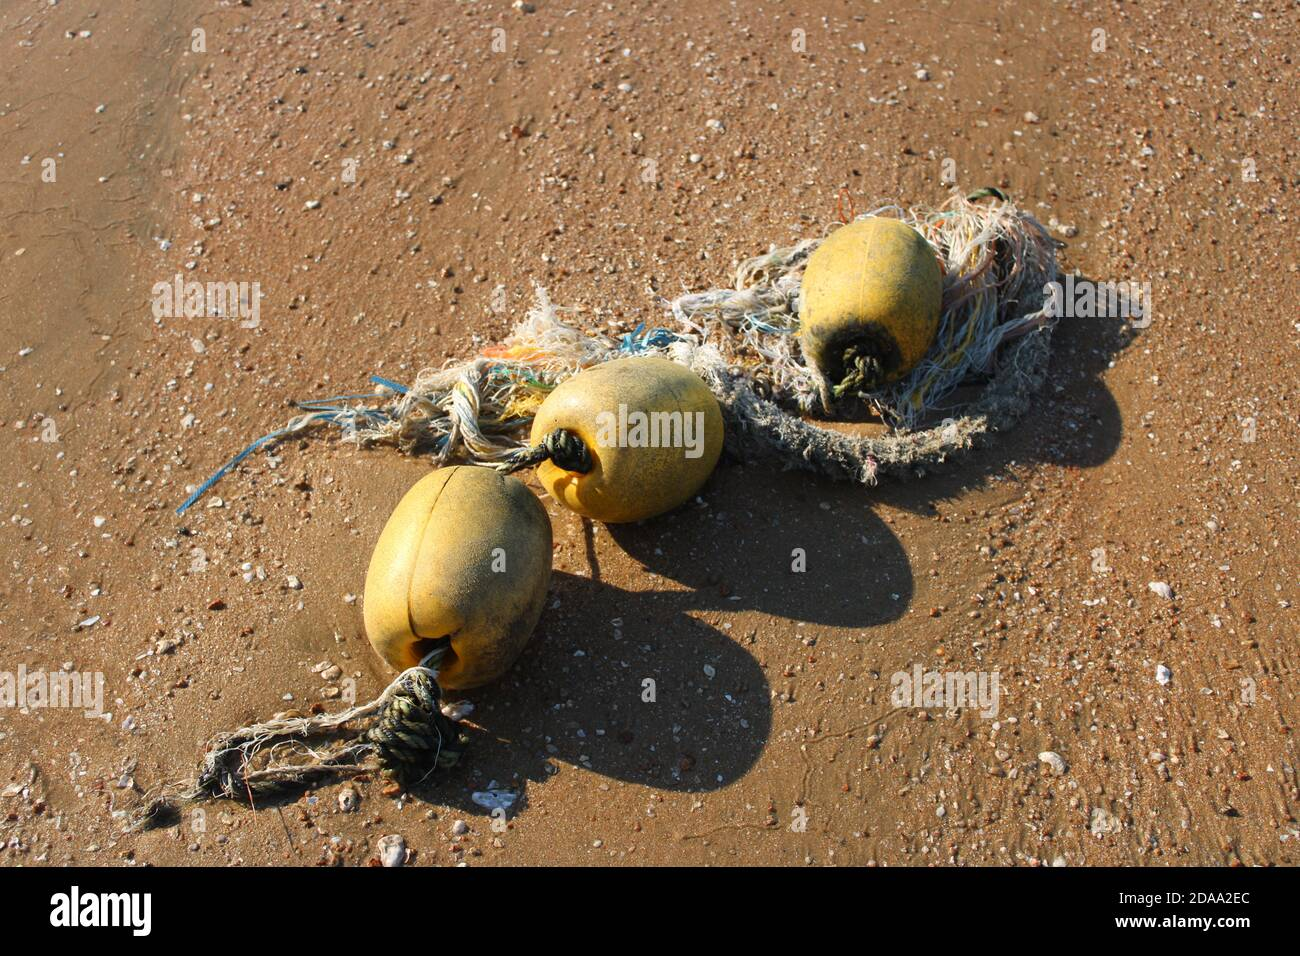 Sea worn yellow floating markers on beach tied together with frayed ropes Stock Photo